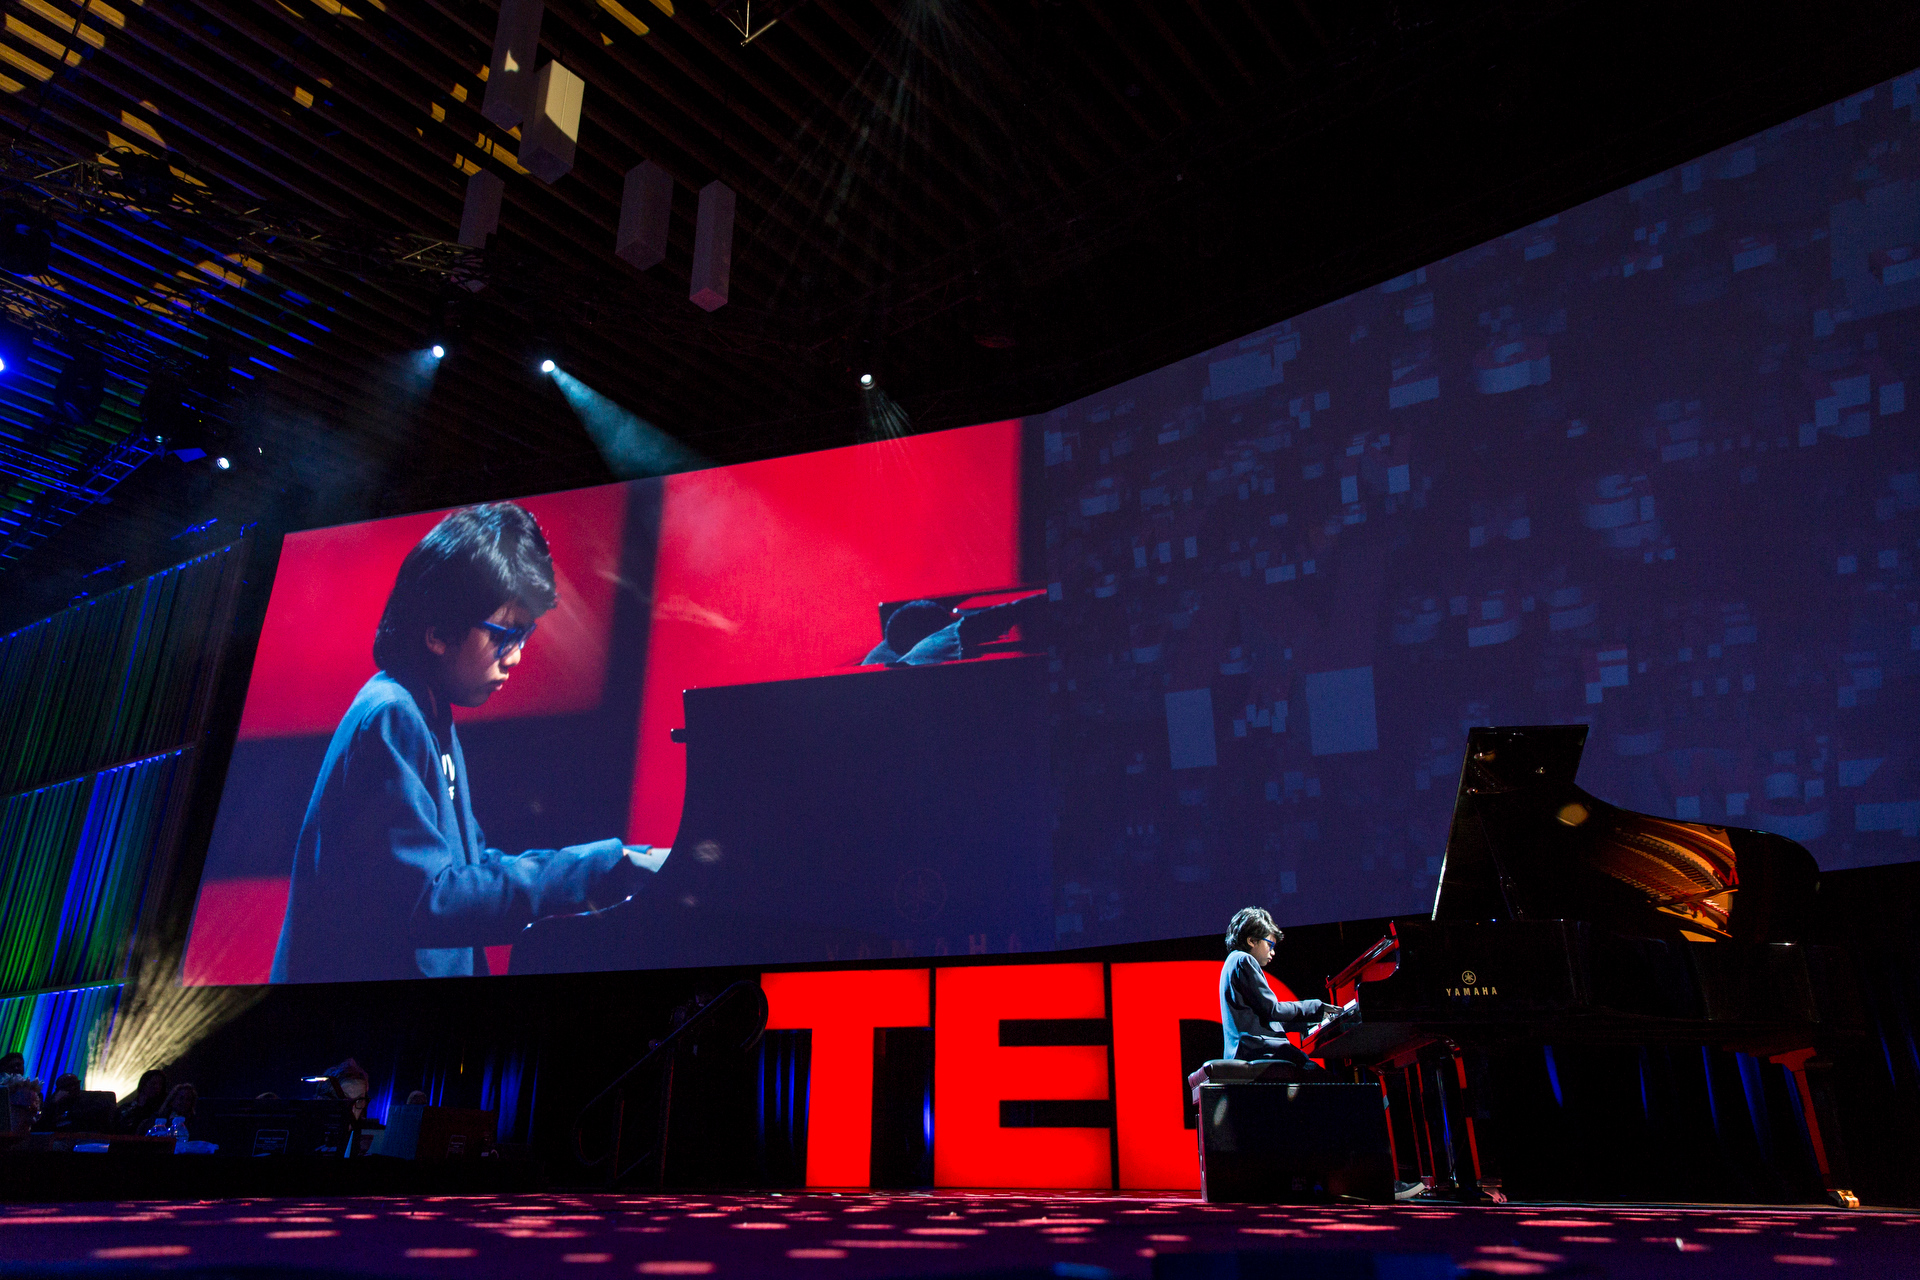 Joey Alexander performs at TED2015 - Truth and Dare, Session 5. Photo: Bret Hartman/TED